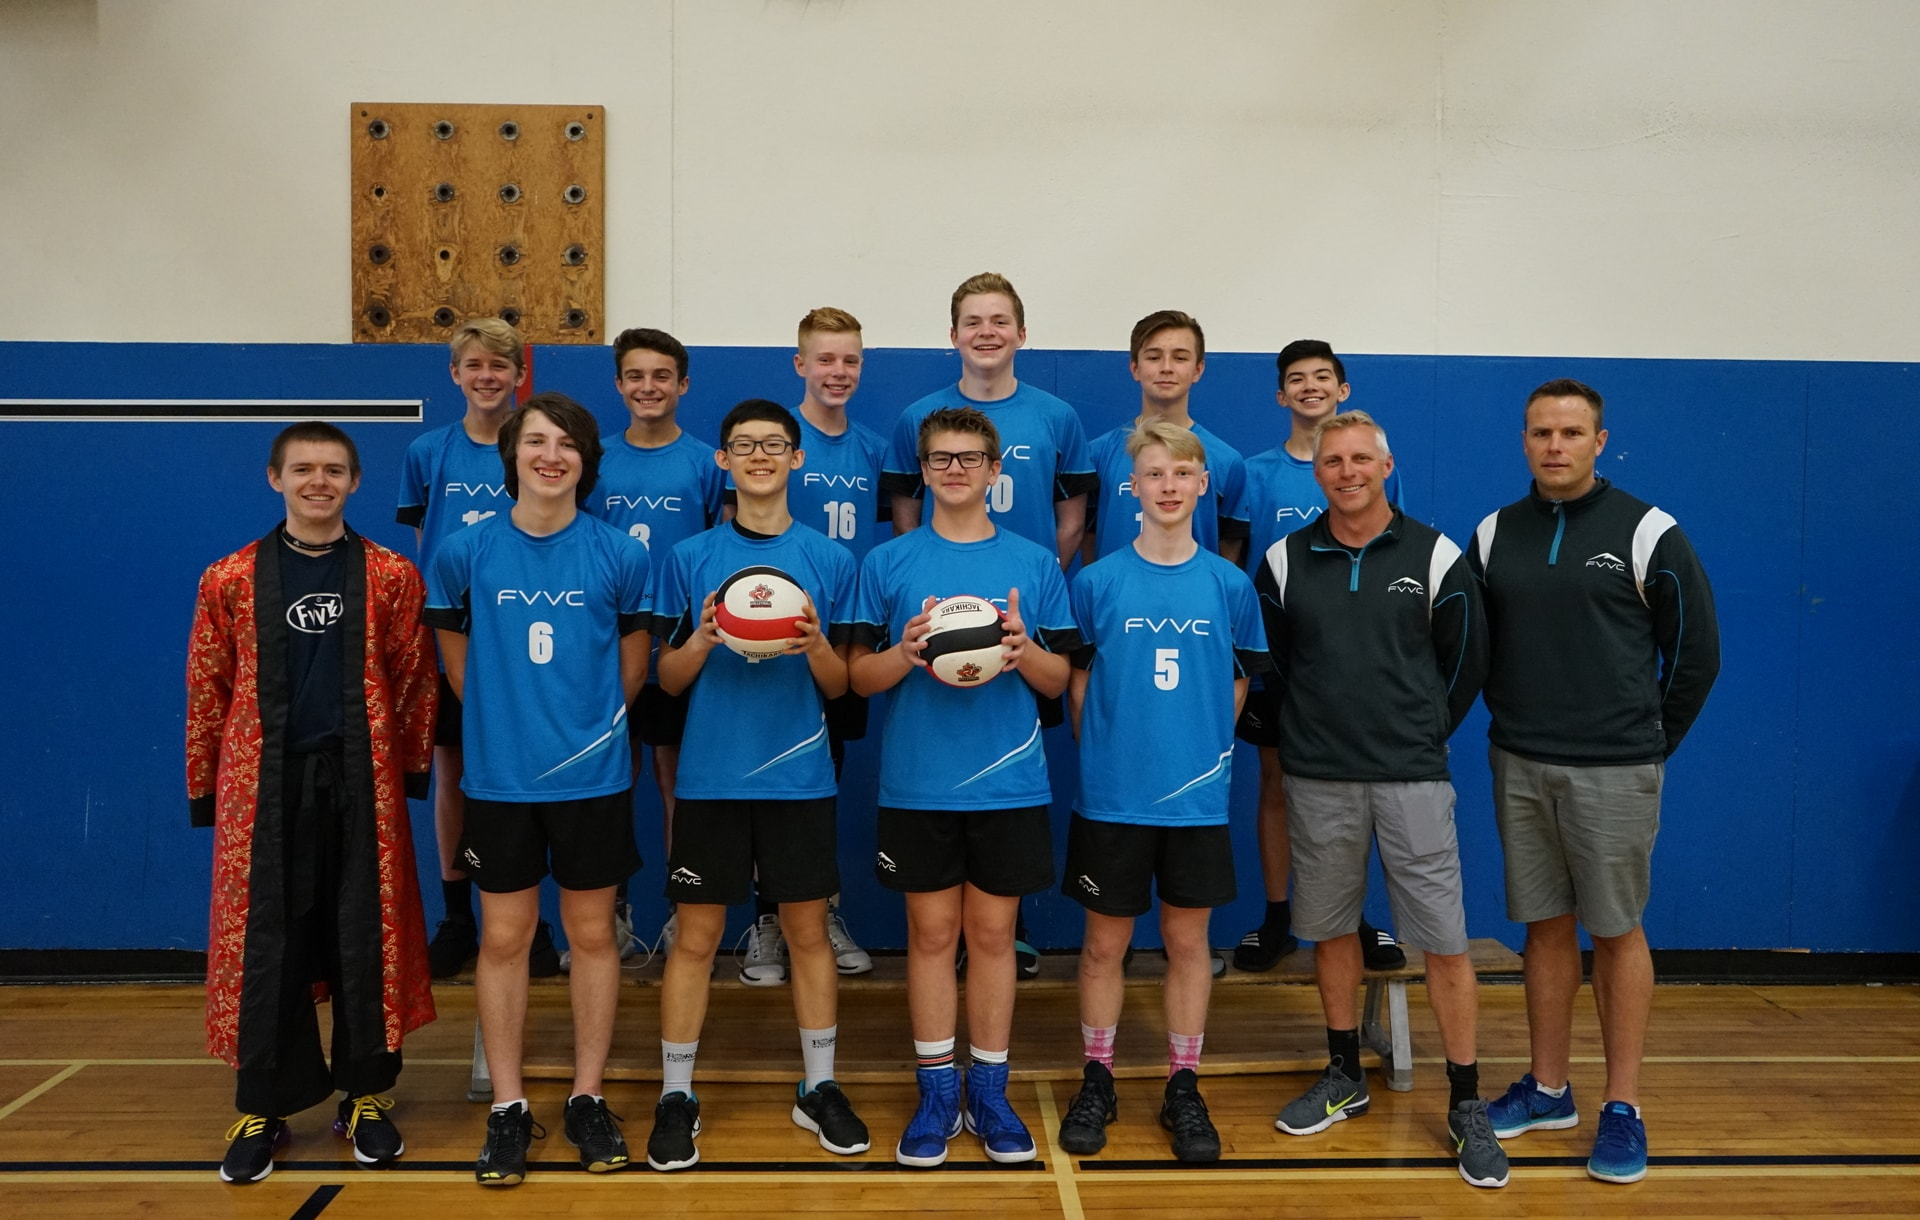 2018 Team Photo 14U Boys FVVC.jpg